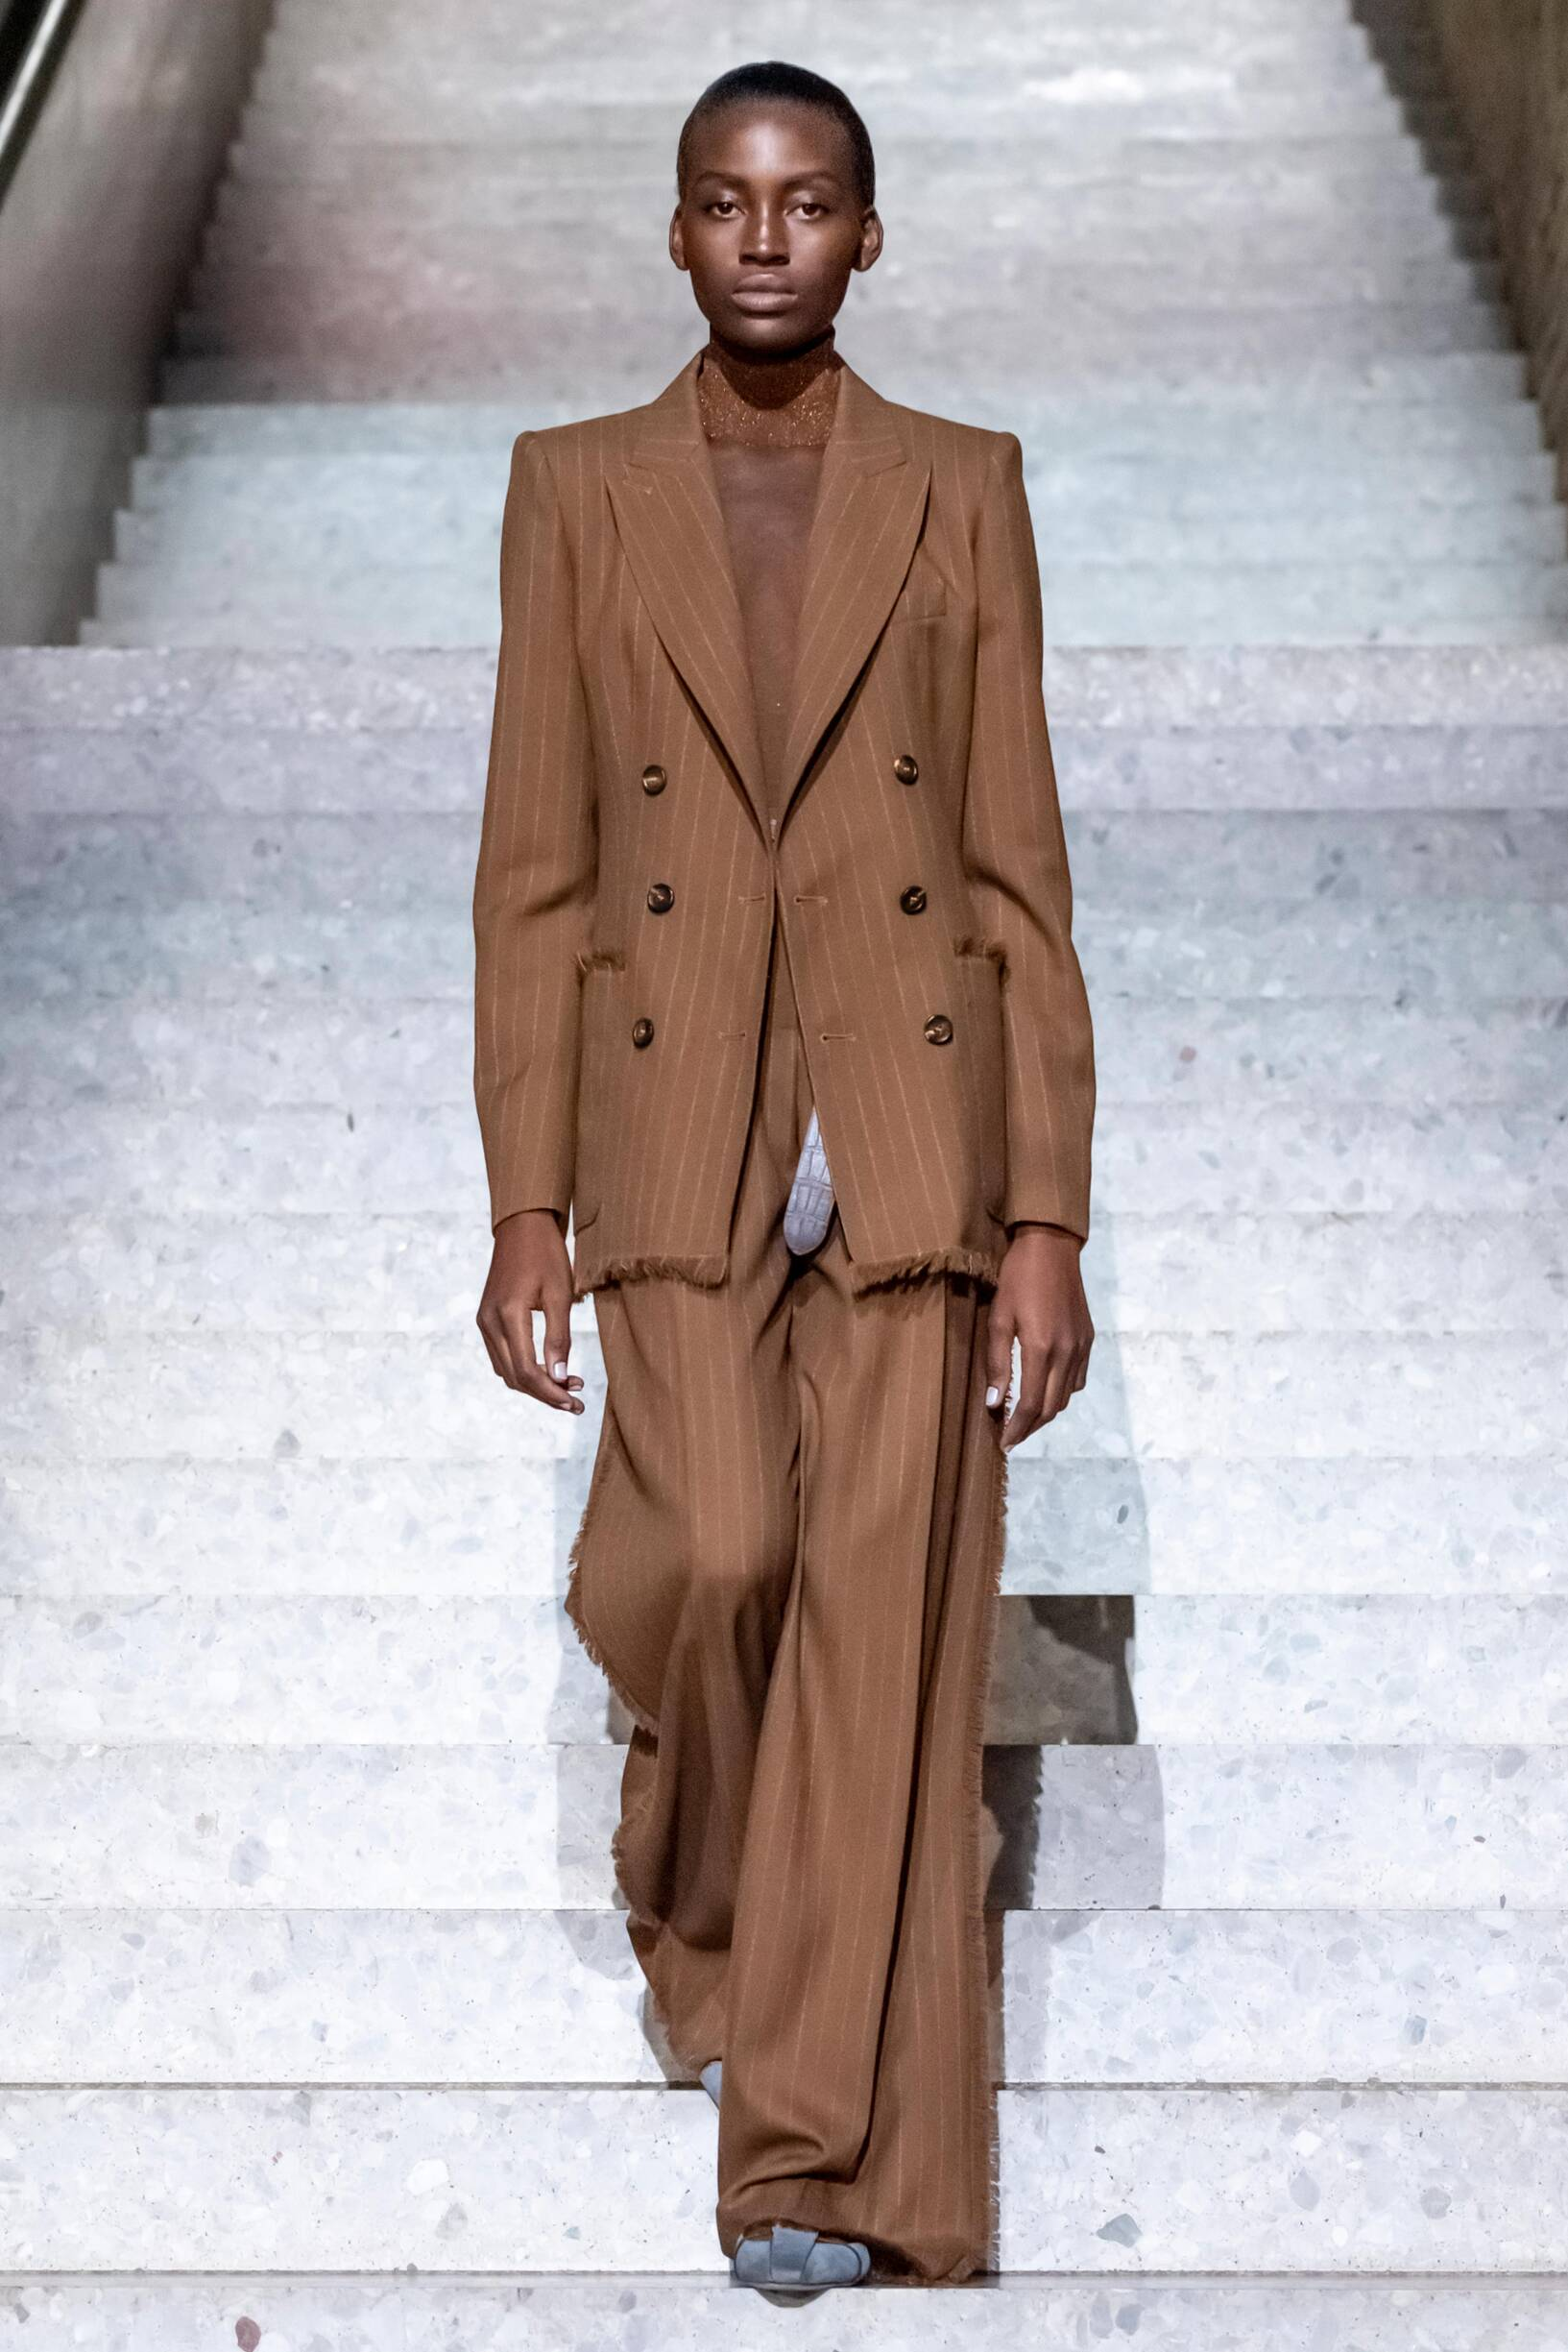 Max Mara Resort 2020 Collection Look 16 Berlin